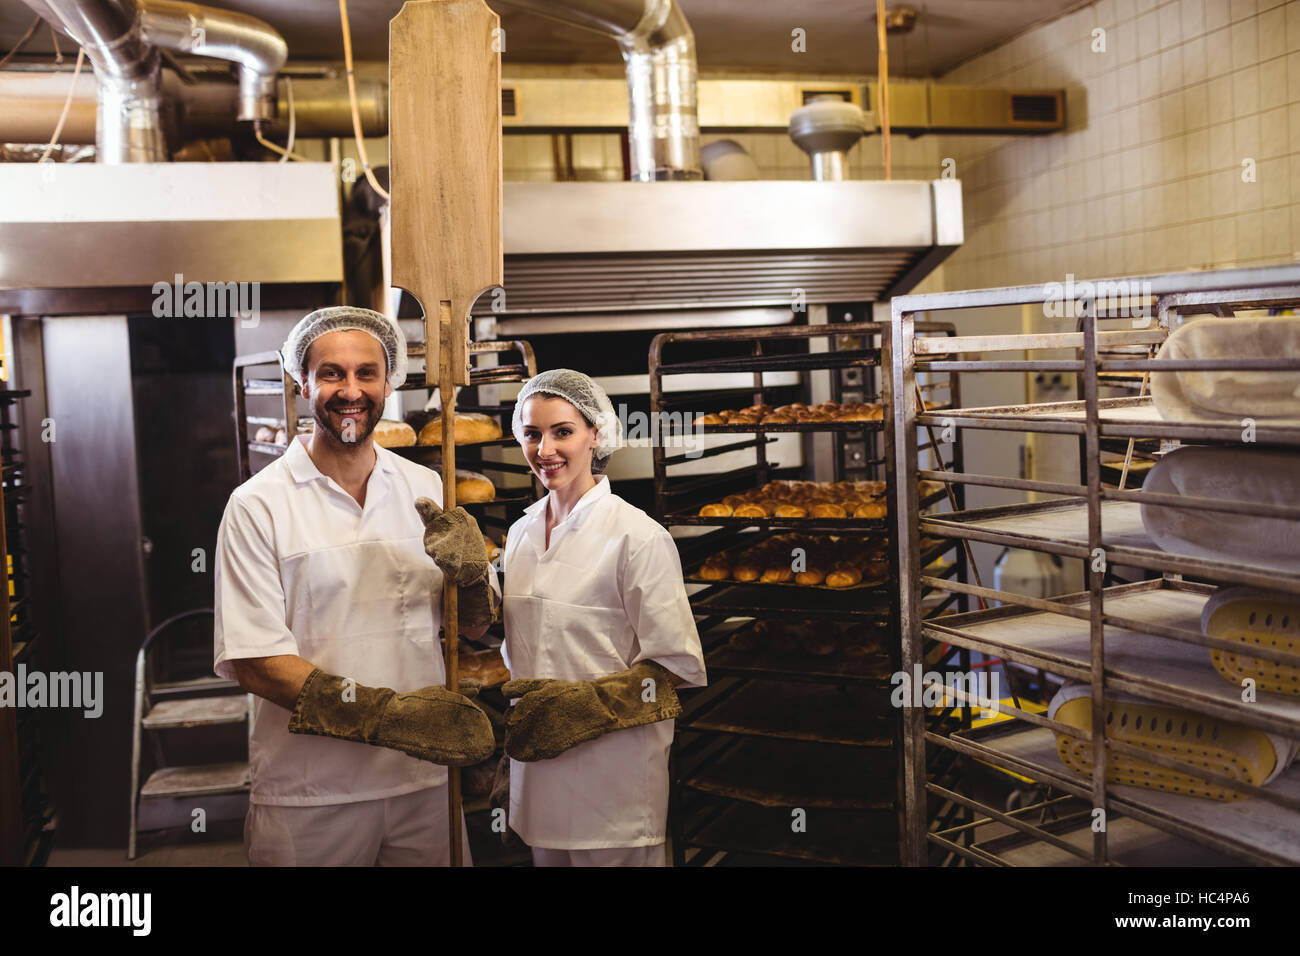 Portrait of female and male baker standing together - Stock Image